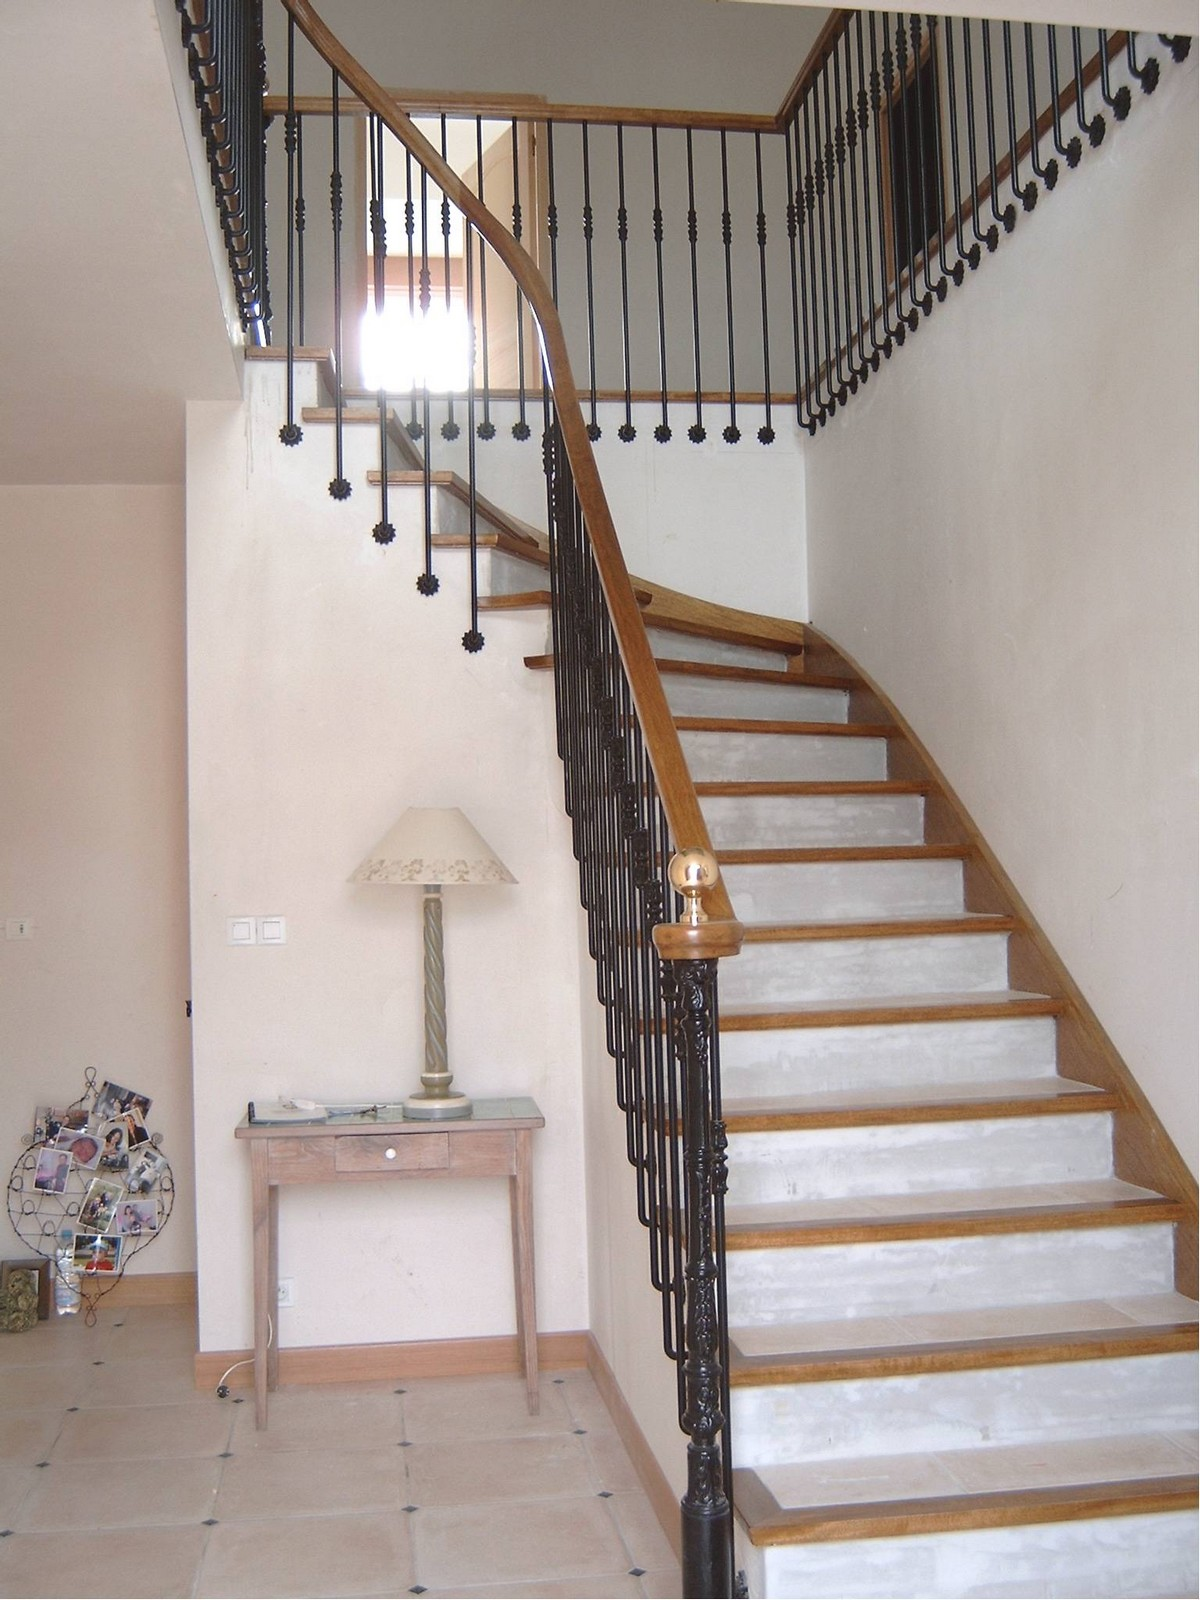 Renovation Rampe Escalier ~ Myfrdesign.co